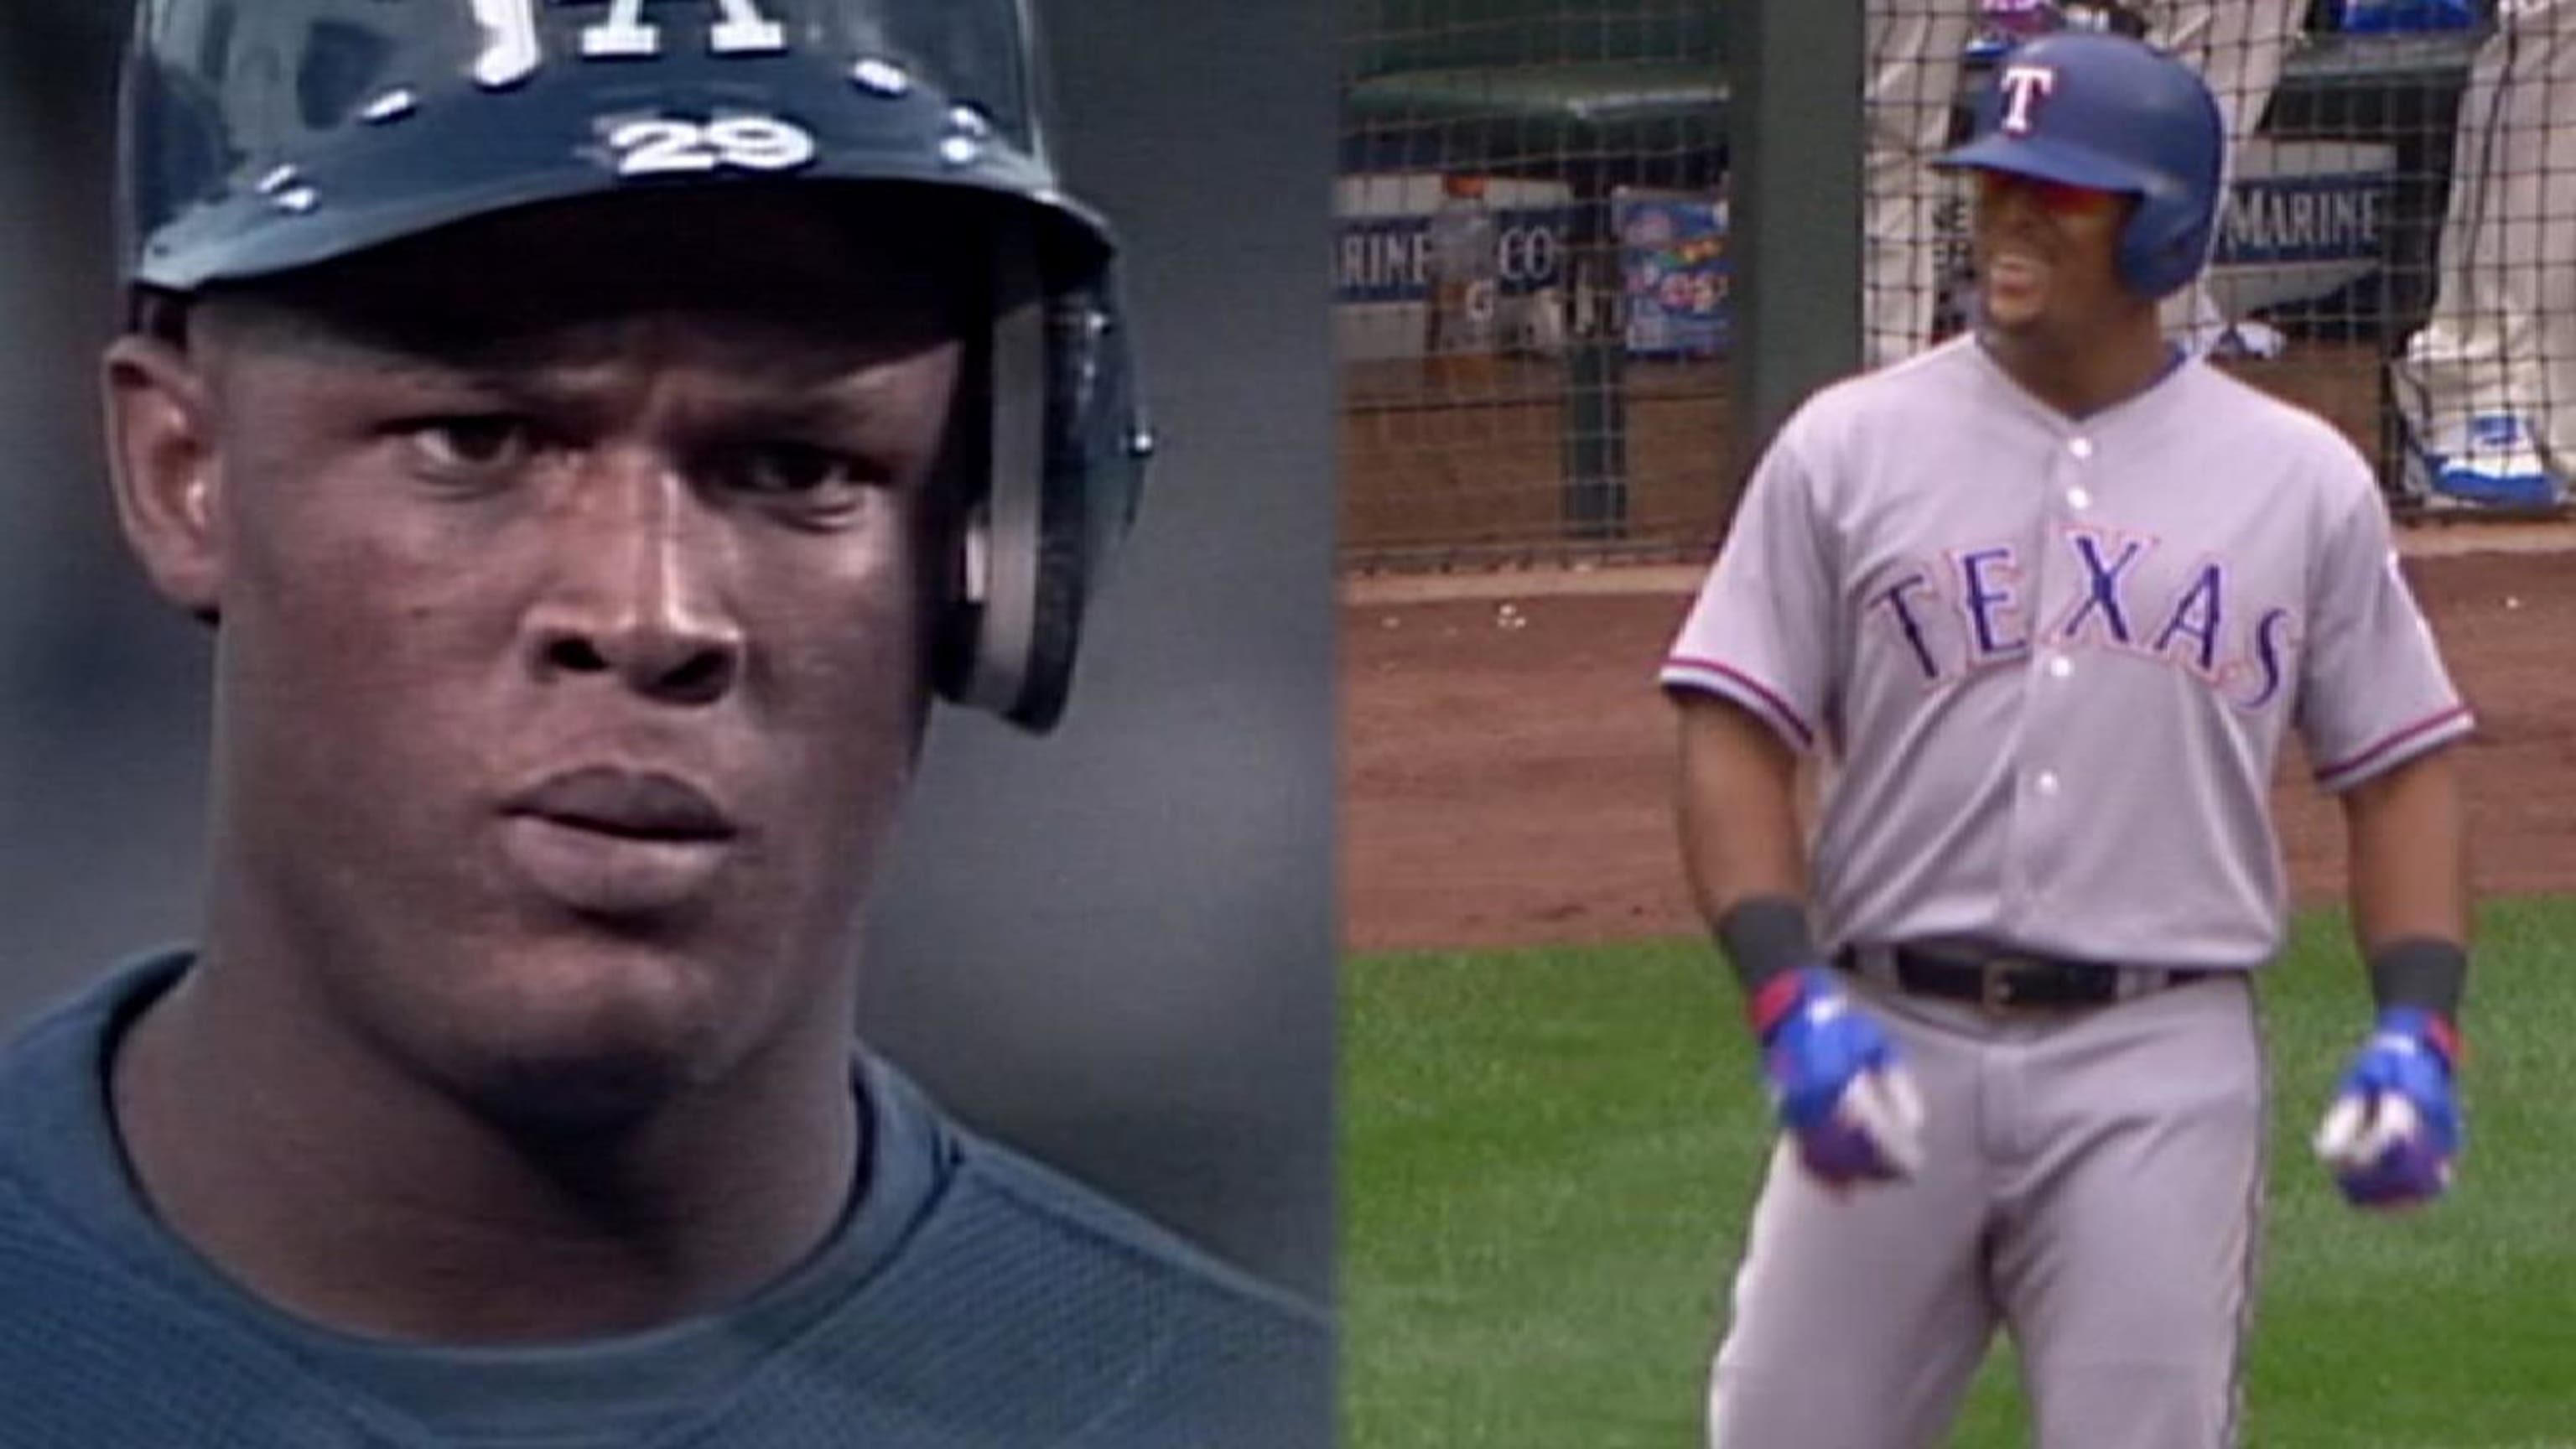 Beltre's first and last hits